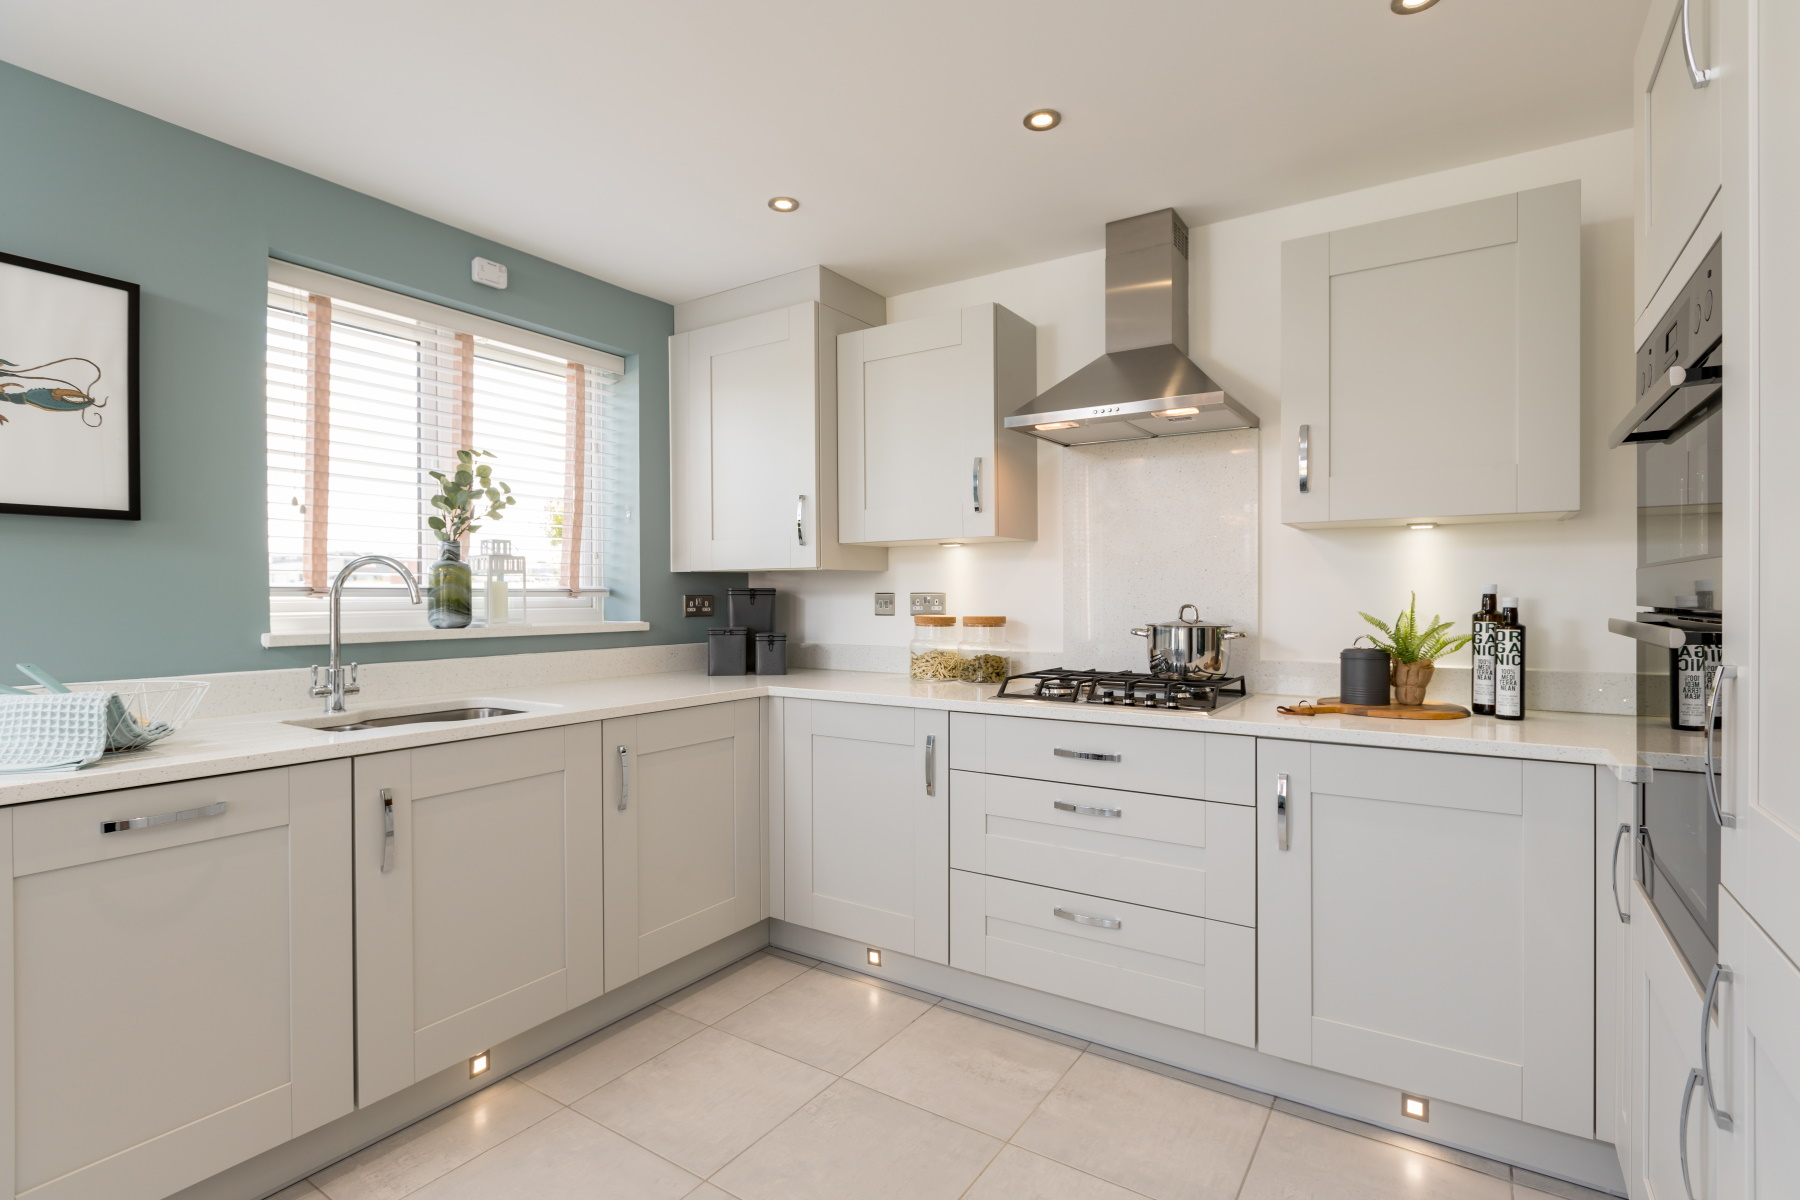 Taylor Wimpey Exeter - Buckingham Heights - Easdale example kitchen